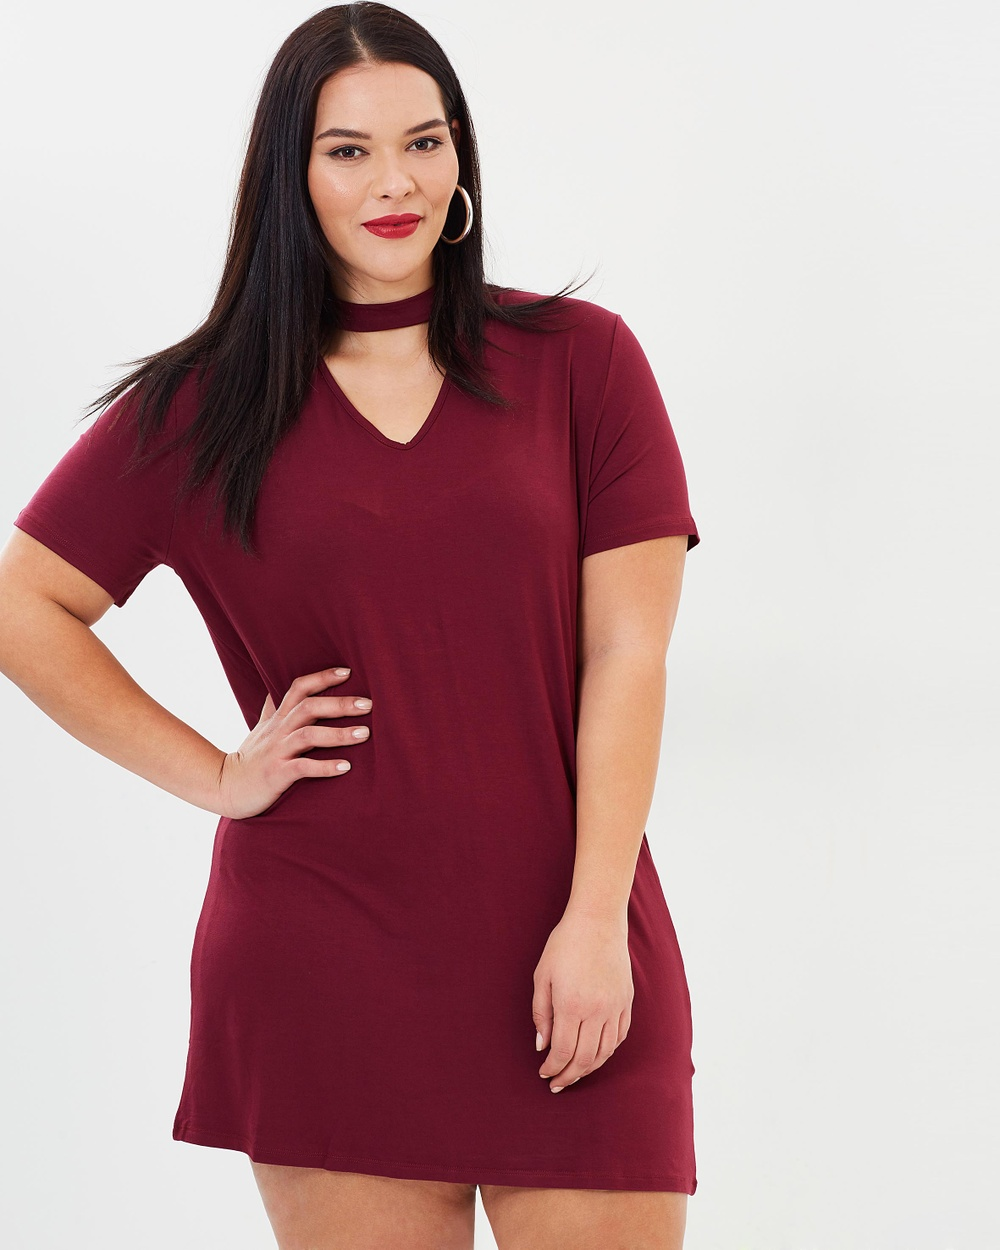 Photo of Missguided Curve Missguided Curve Choker Neck T Shirt Dress Tops Burgundy Choker Neck T-Shirt Dress - Bold and straight-talking, UK fashion brand Missguided Curve look to global street style and popular culture to deliver a confident collection of day and evening dresses, streetwear-inspired separates and slogan tees for millennial women in a range of sizes. The Choker Neck T-Shirt Dress has been crafted from a smooth stretch jersey and is rendered in sumptuous burgundy